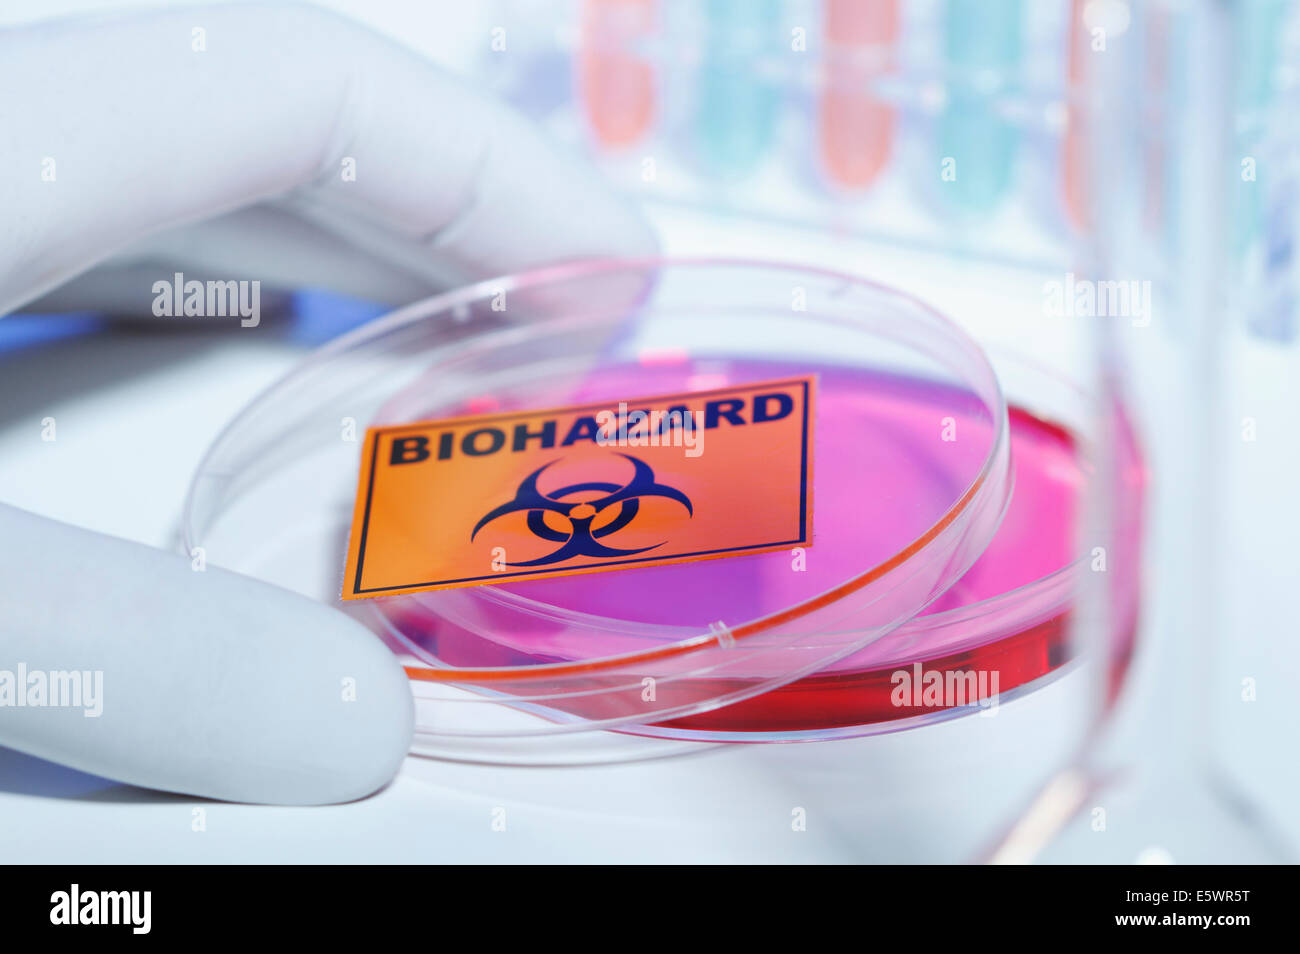 Gloved hand removing bio hazard lid from petri dish - Stock Image